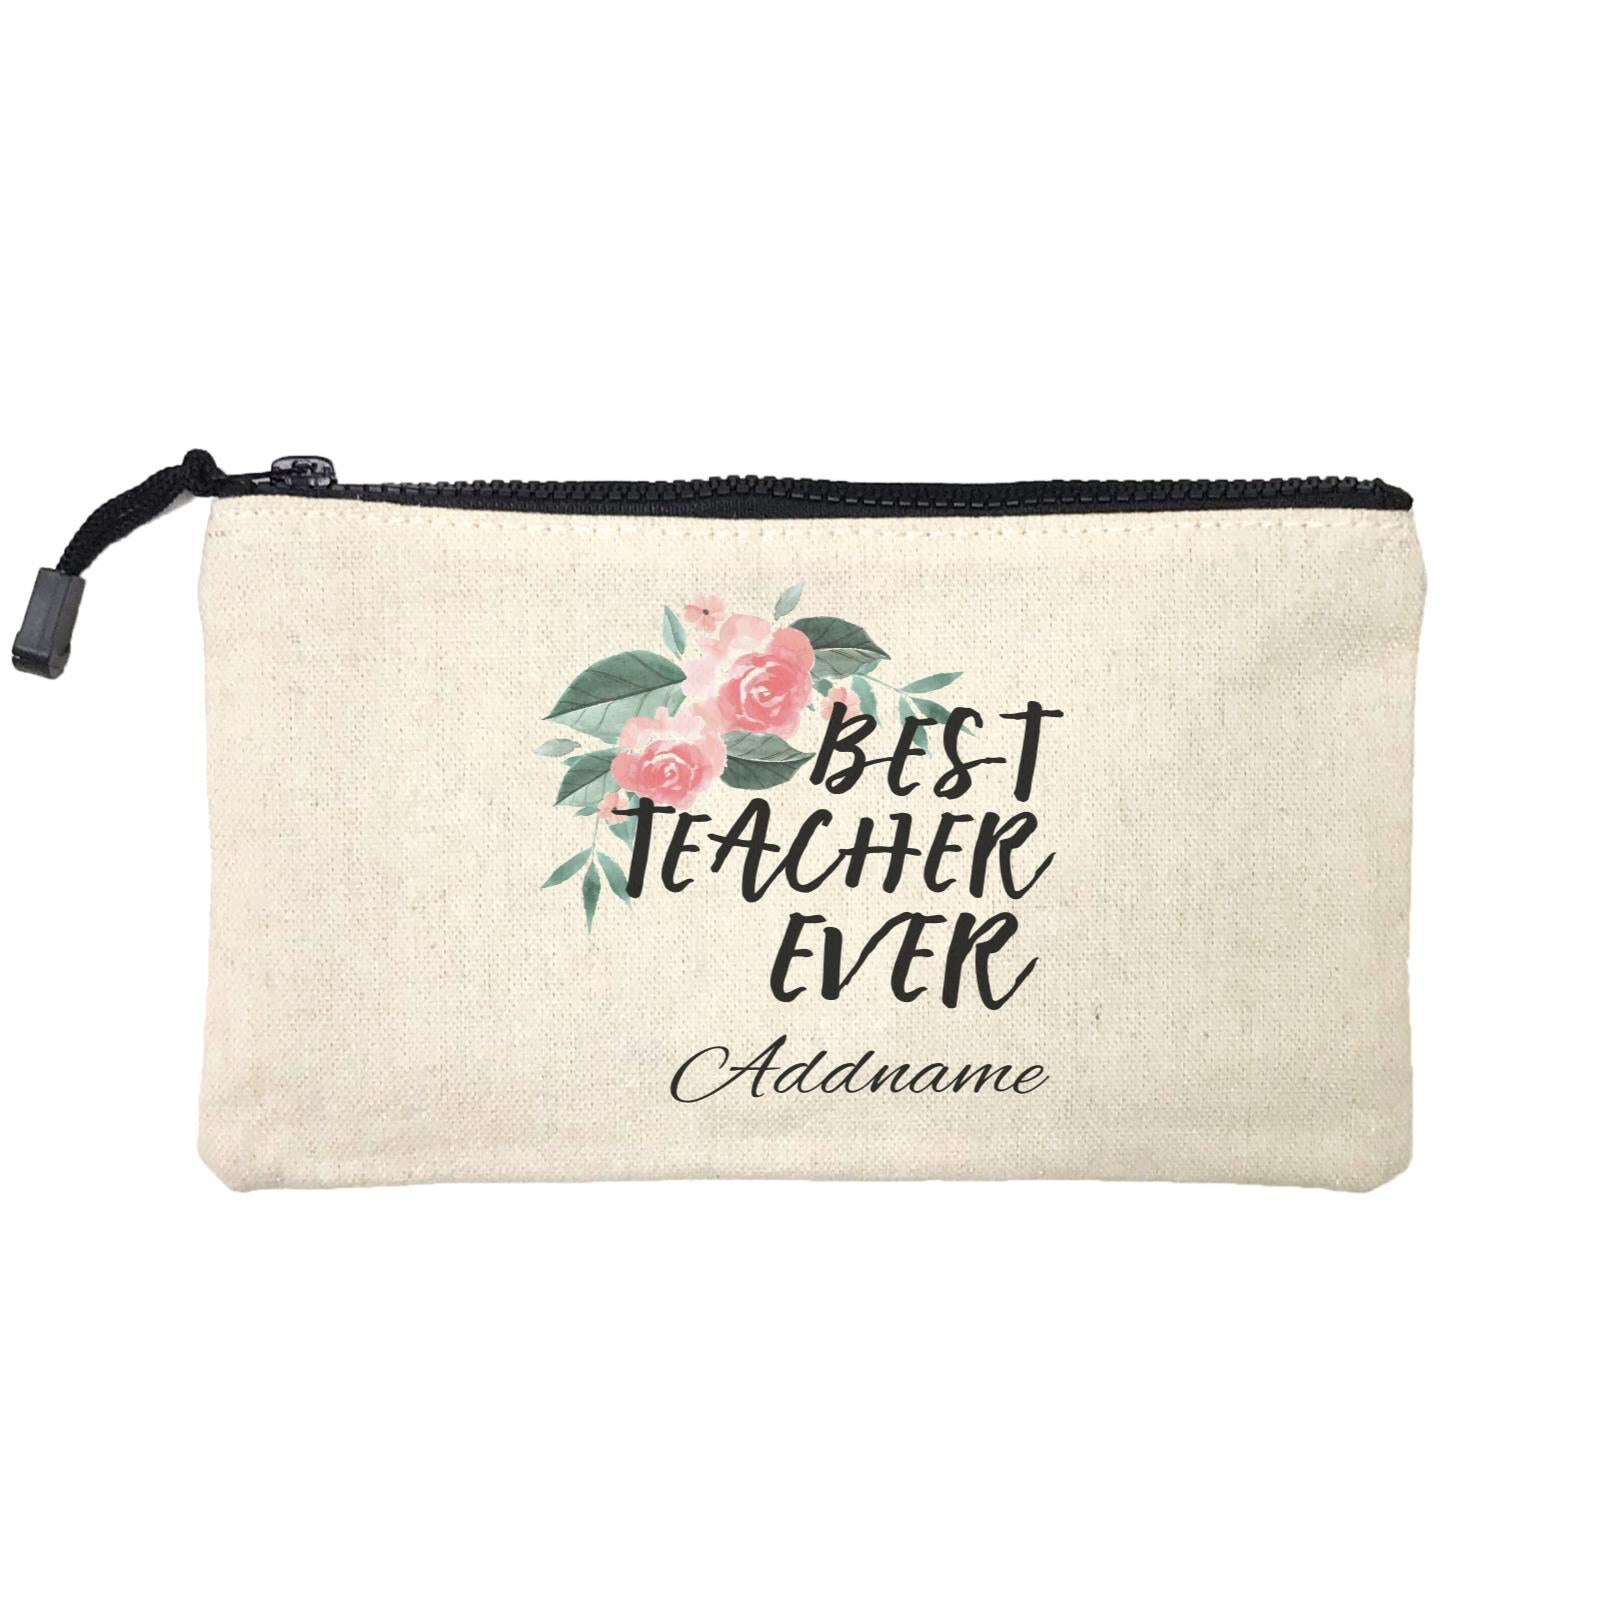 Great Teachers Watercolour Flowers Best Teacher Ever Addname Mini Accessories Stationery Pouch